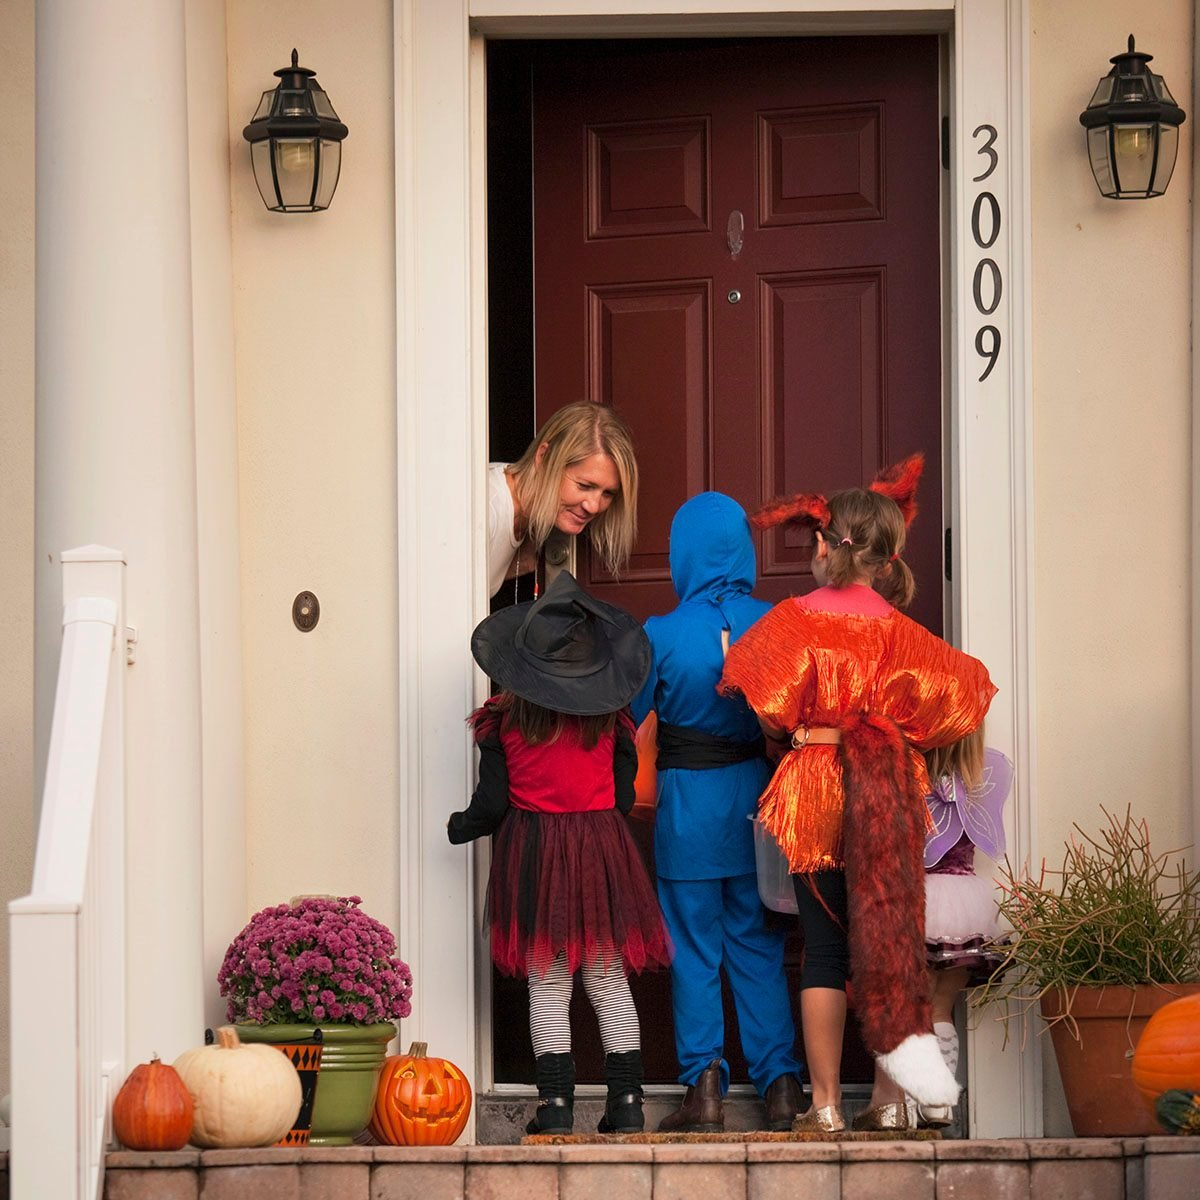 Children trick or treating uses for reusable bags